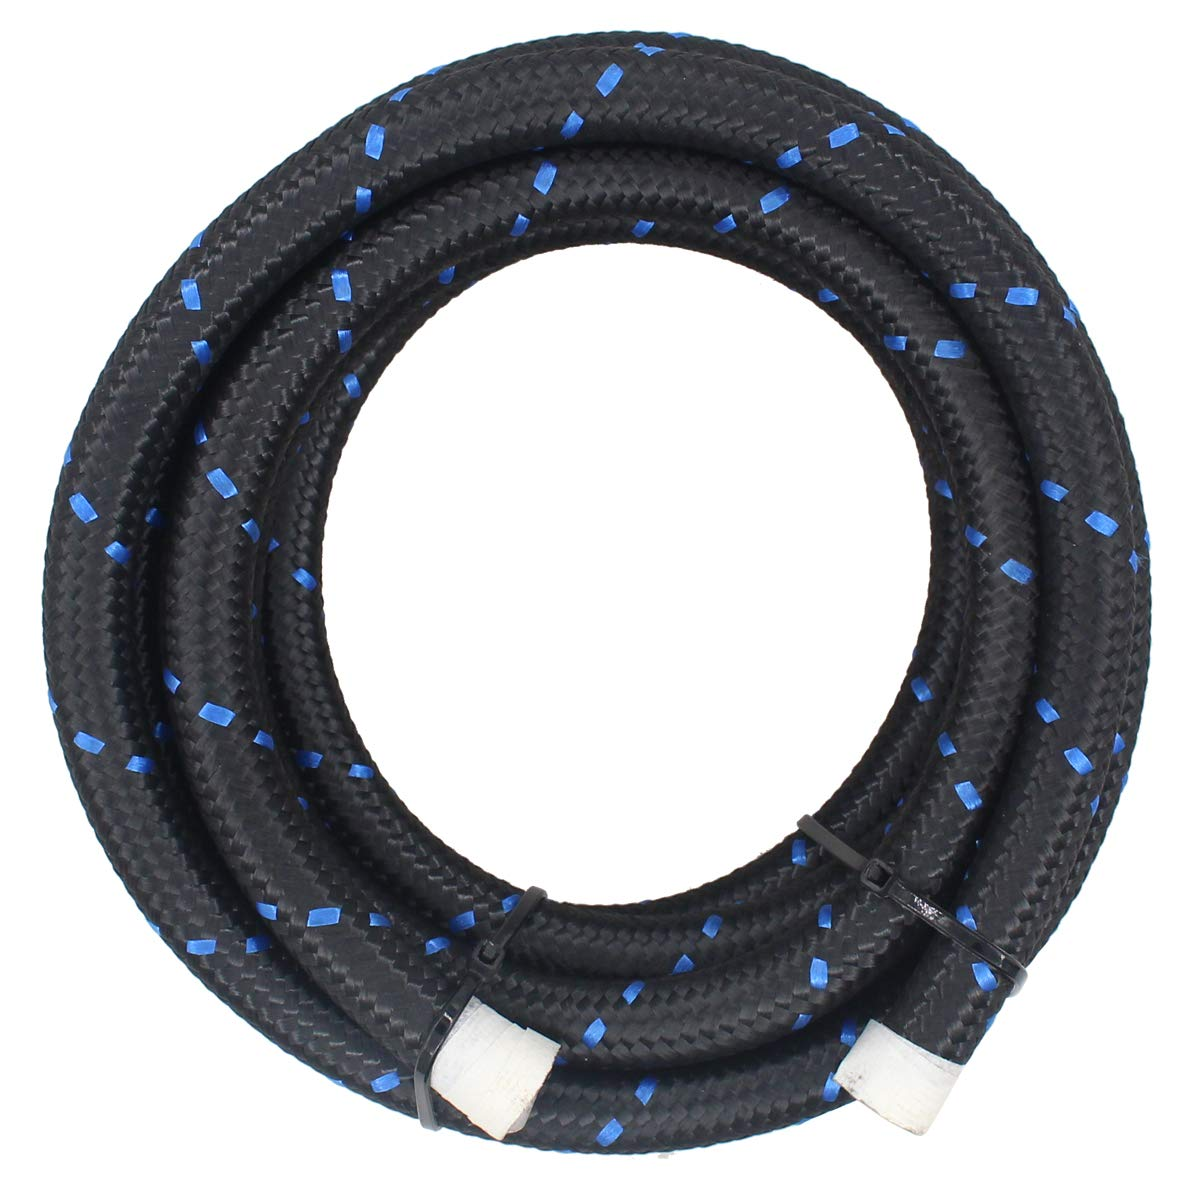 ApplianPar Blue and Black Premium Braided Stainless Steel 6AN 10 Feet Fuel Line Filler Feed Hose Ends Kit